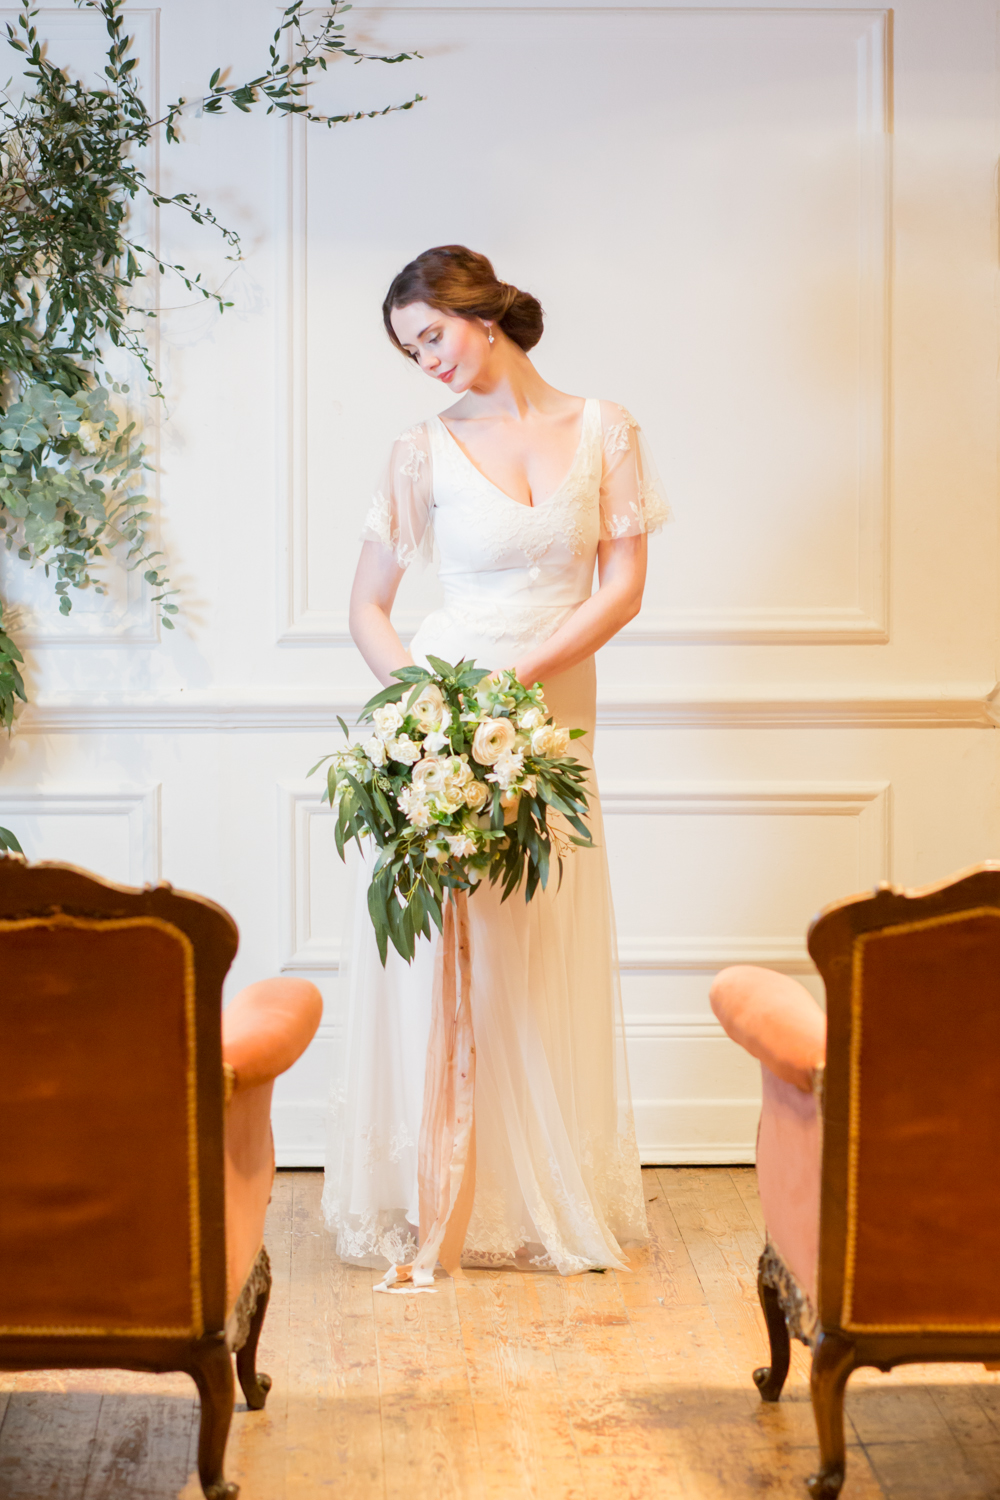 The Timeless Stylist - Elegant Wedding Ceremony Styling